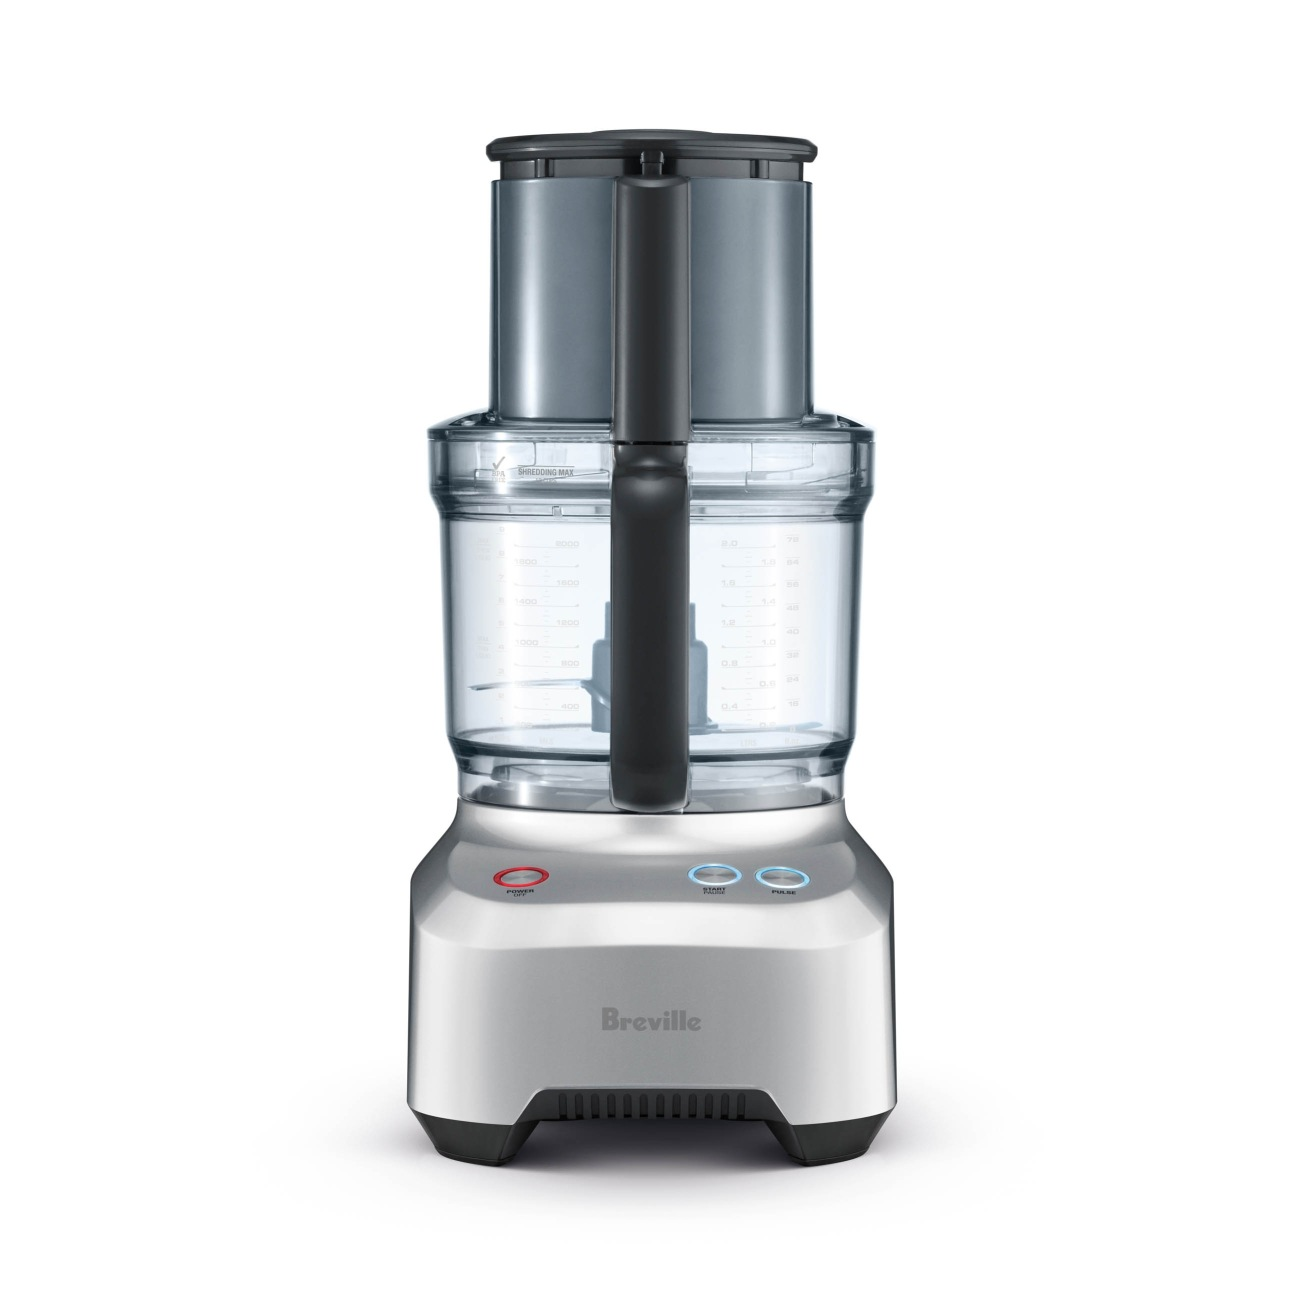 the Breville Sous Chef® 12